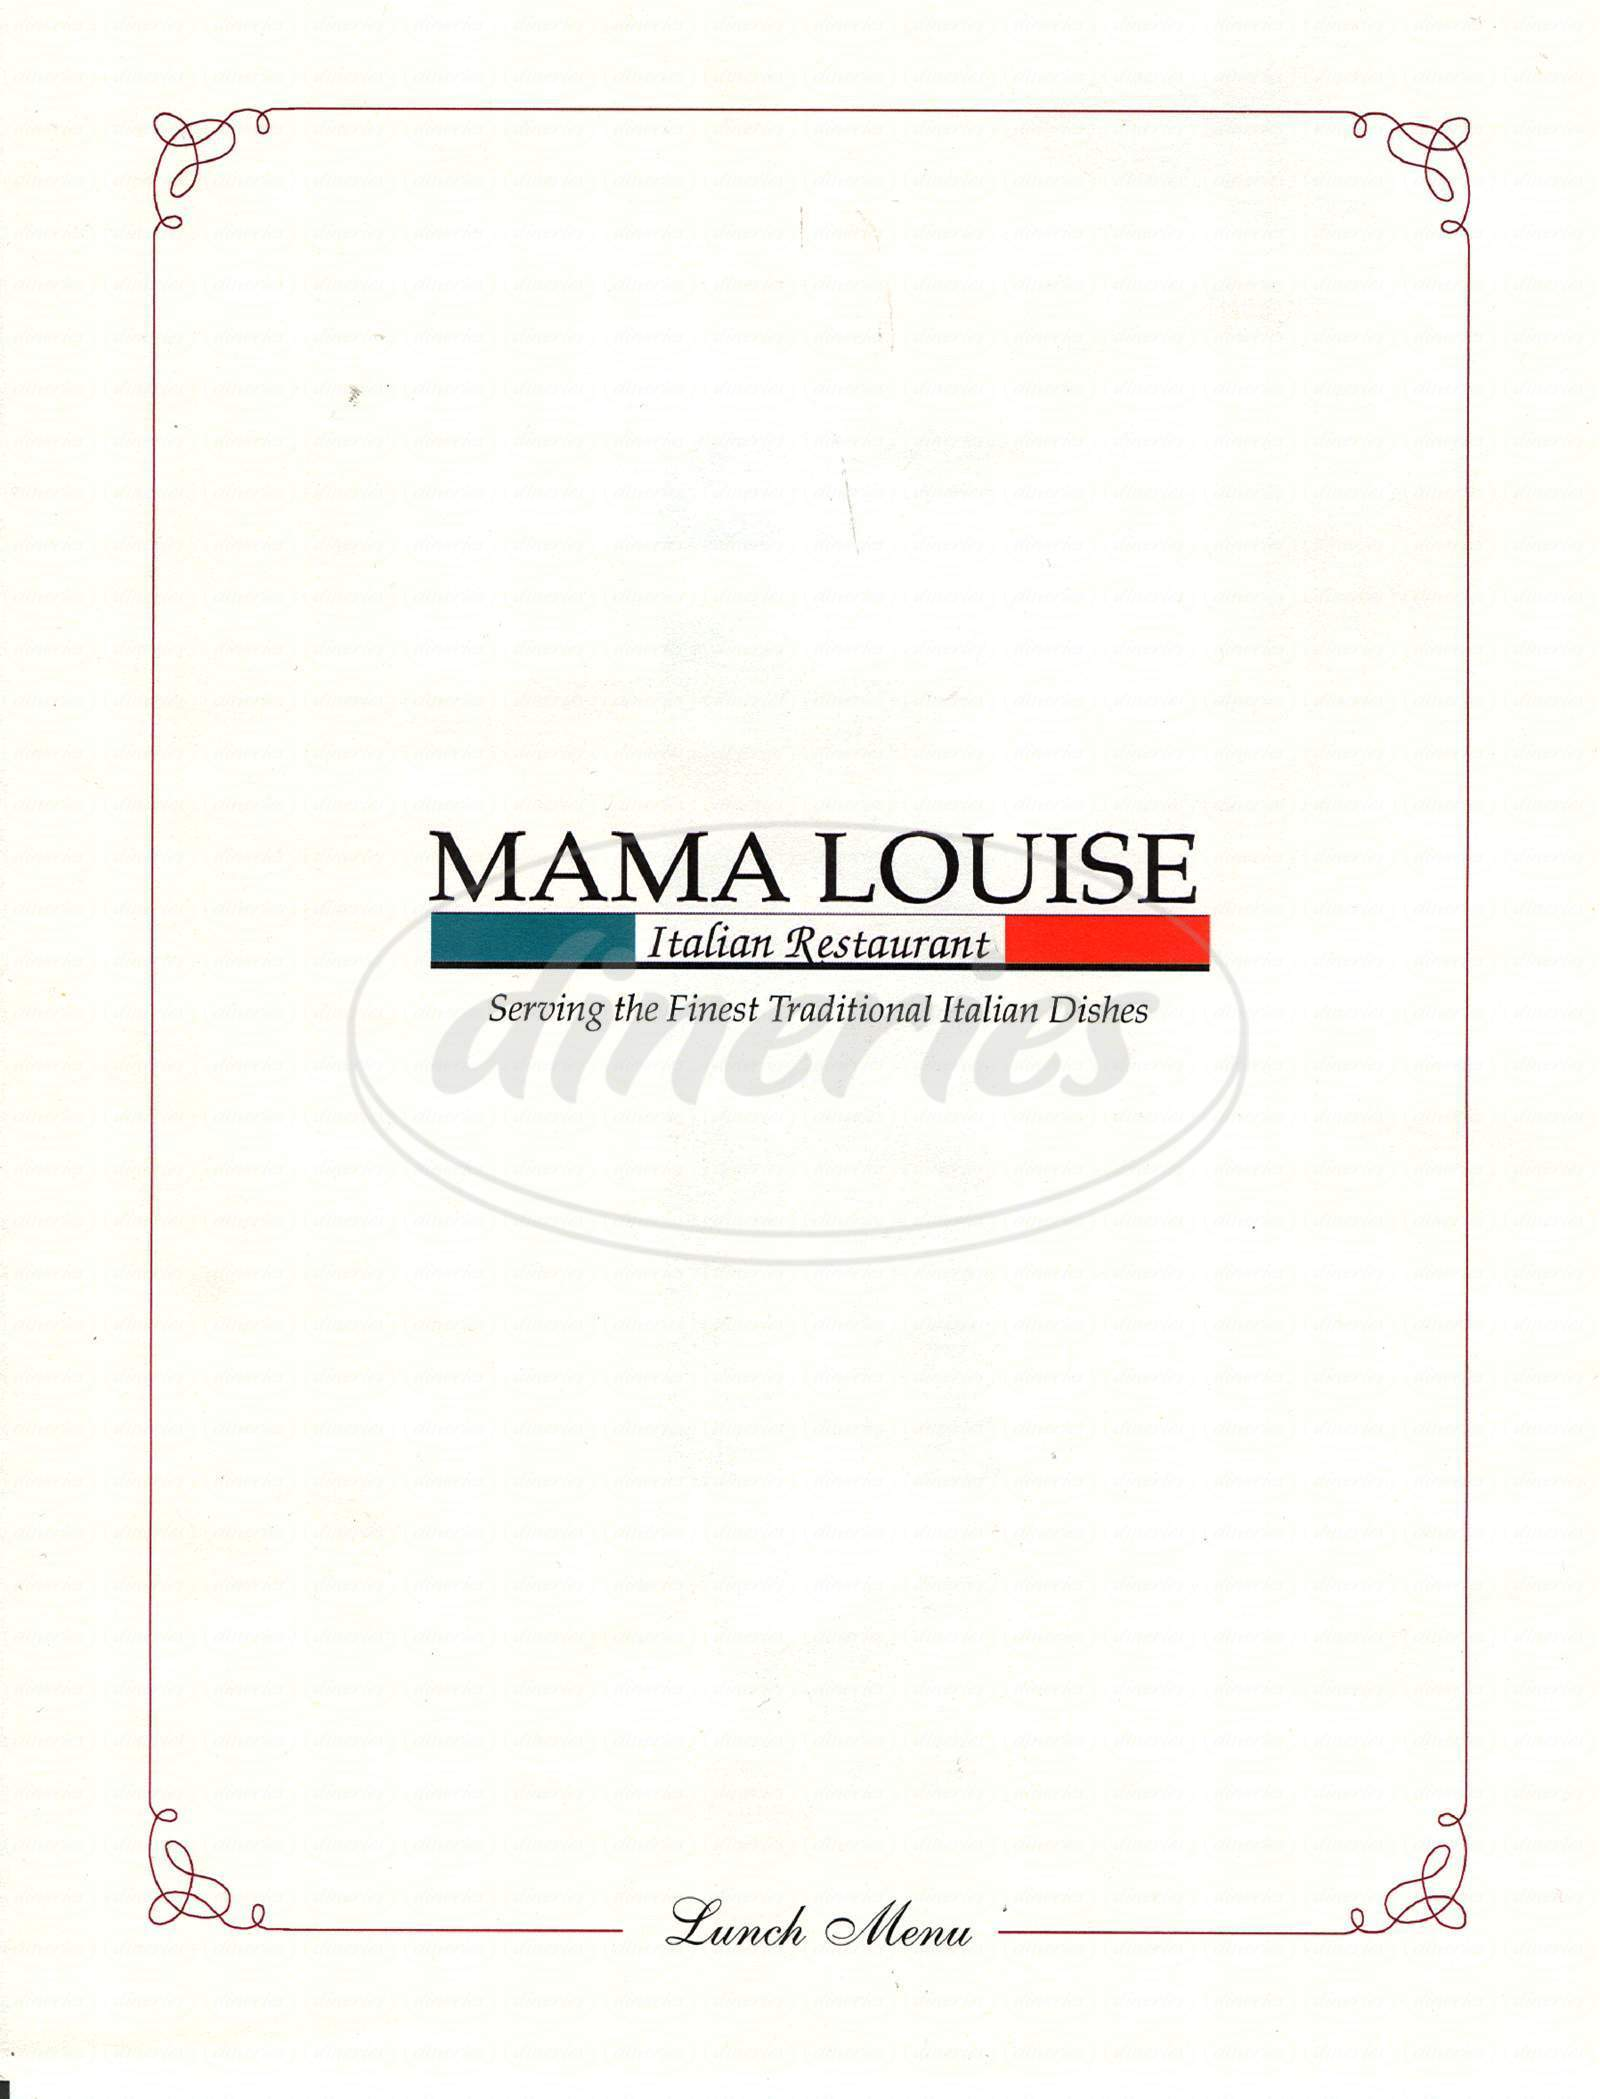 menu for Mama Louise Italian